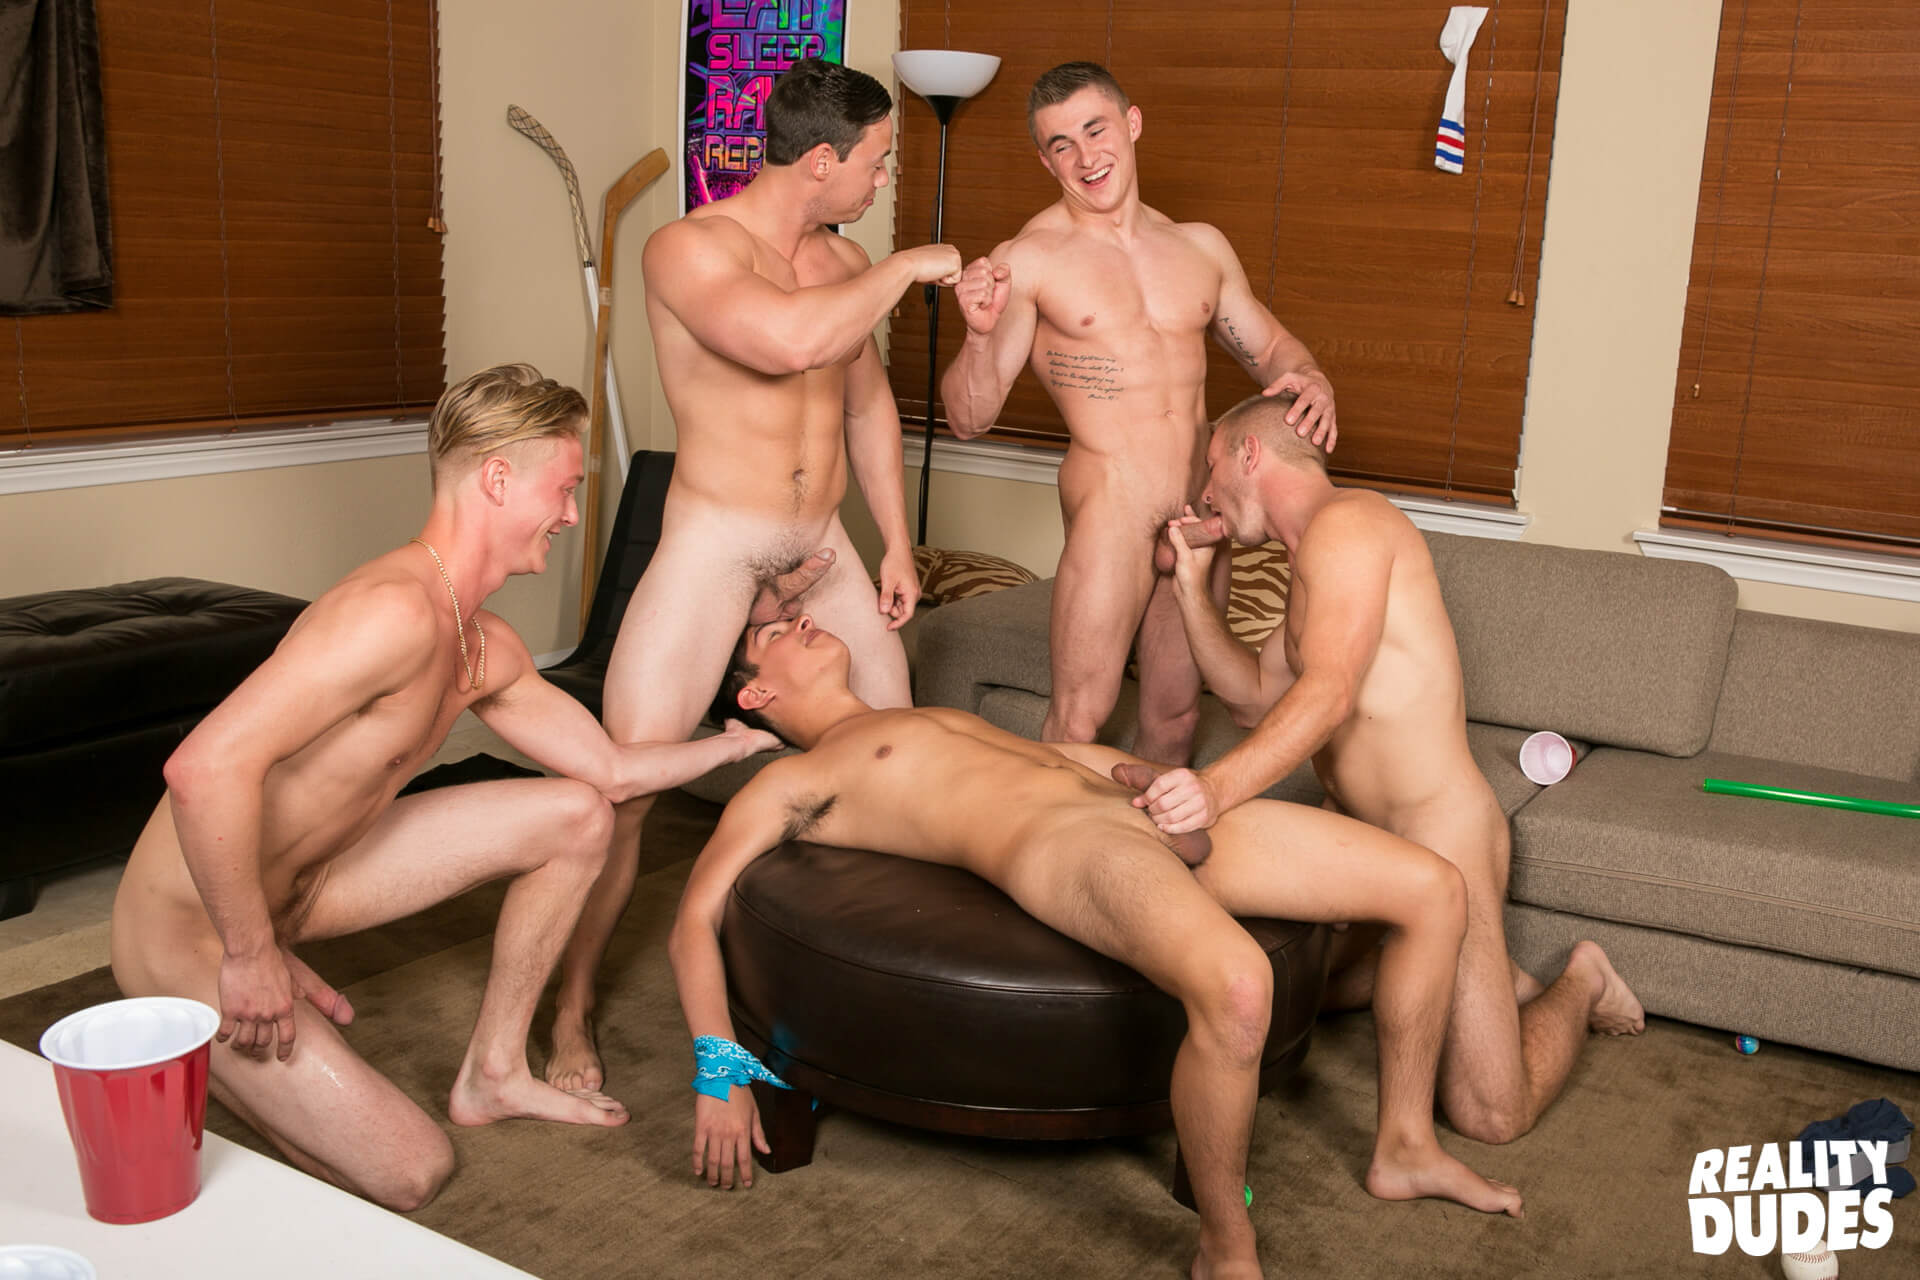 reality dudes dick dorm a spit delight gay porn blog image 22